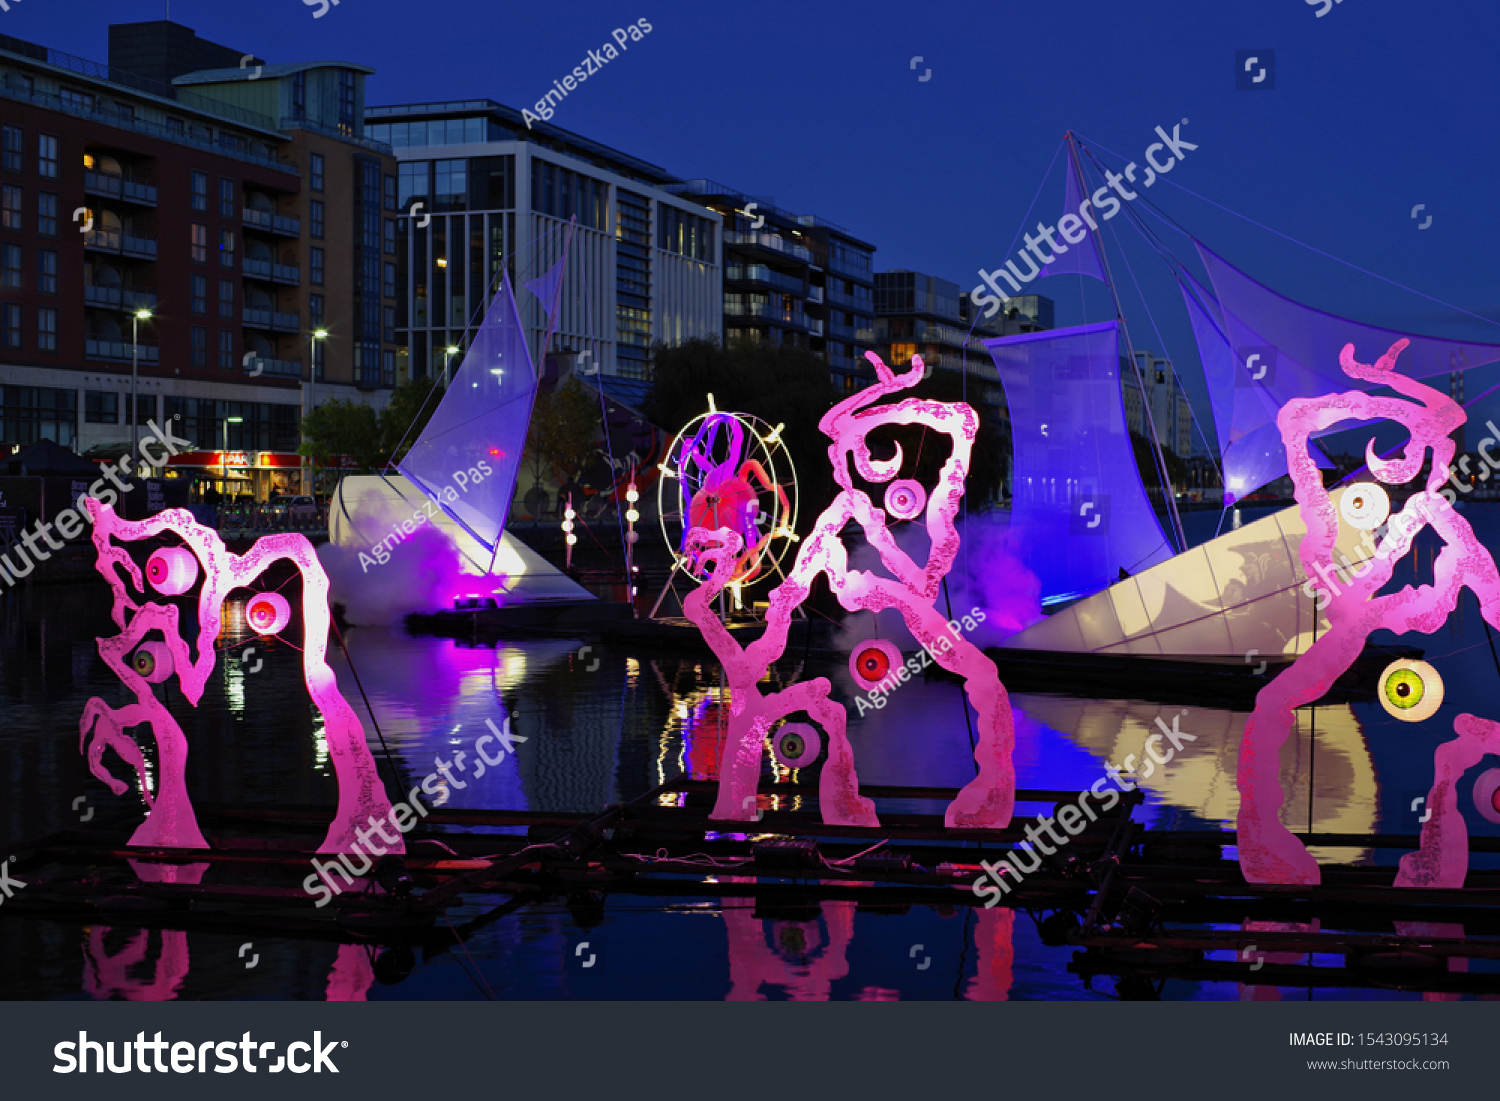 DUBLIN, IRELAND - OCTOBER 27, 2019: Night Watch in pink and blue. Sound and visual installation on the water. The Bram Stocker Festival in Dublin. Halloween.